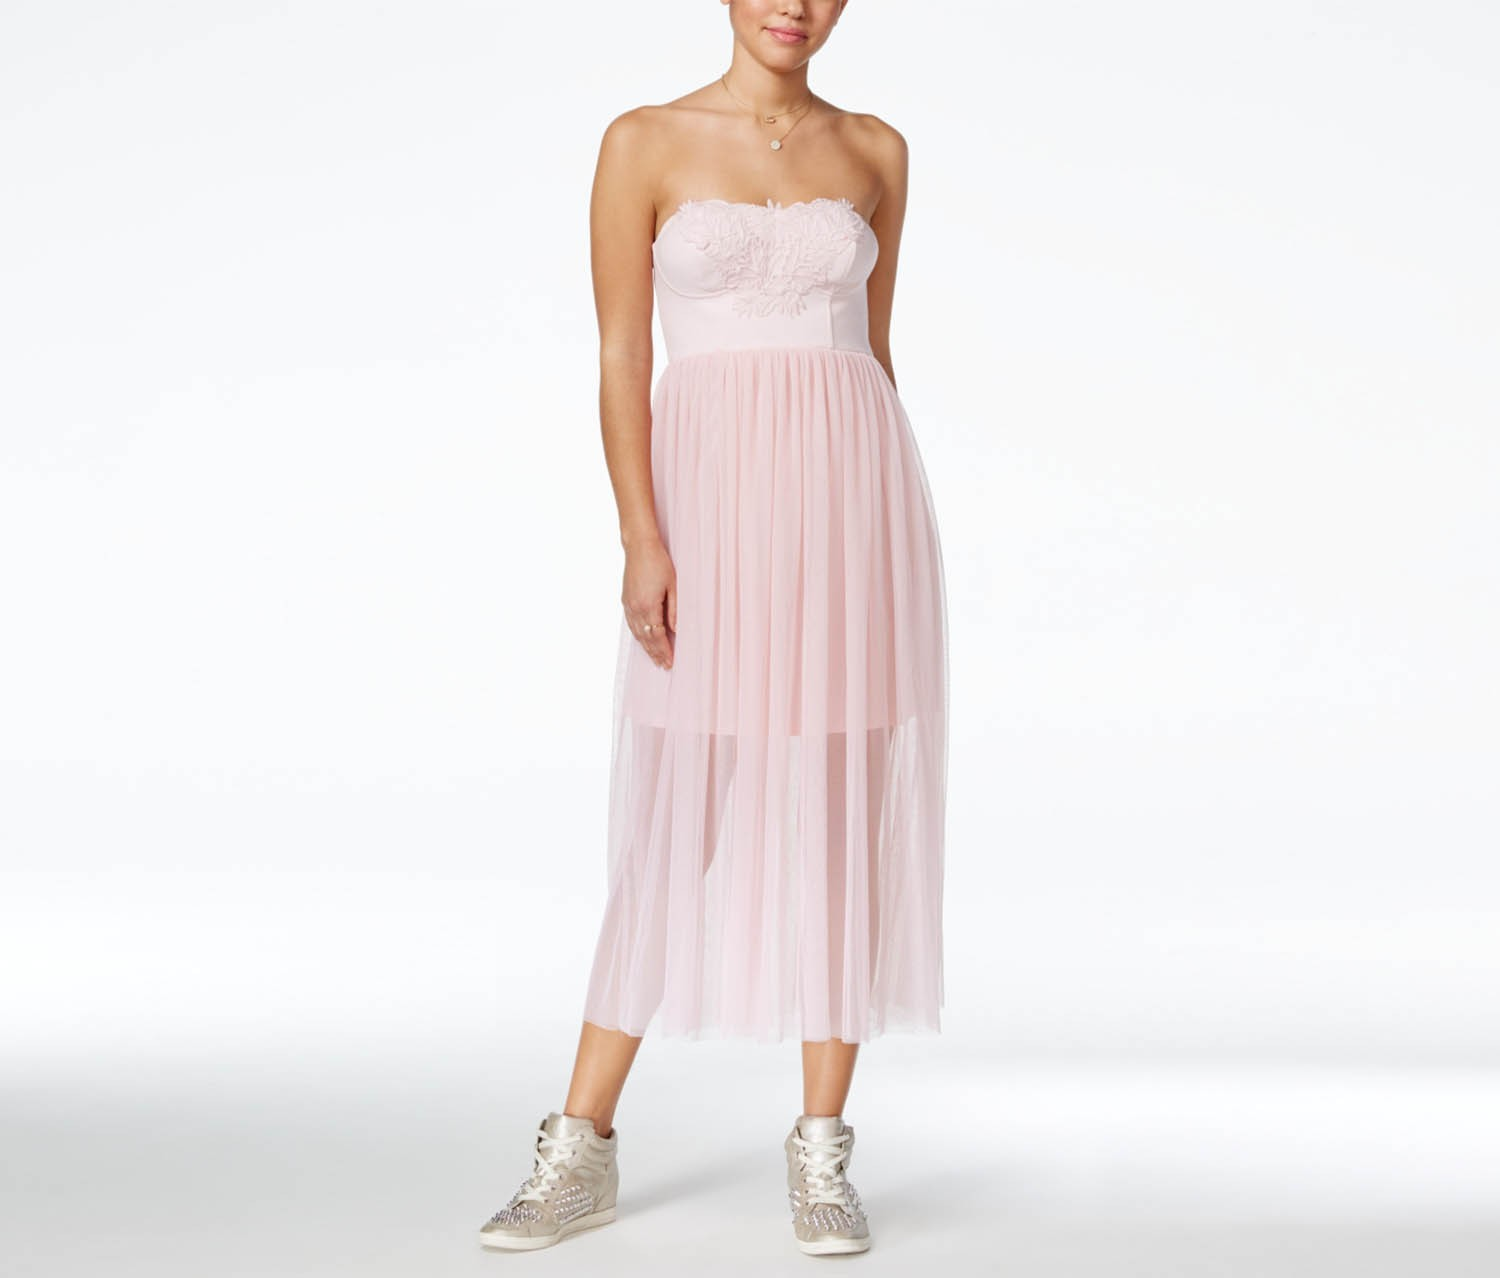 In Awe of You by Awesomeness Embroidered Maxi Dress, Pink